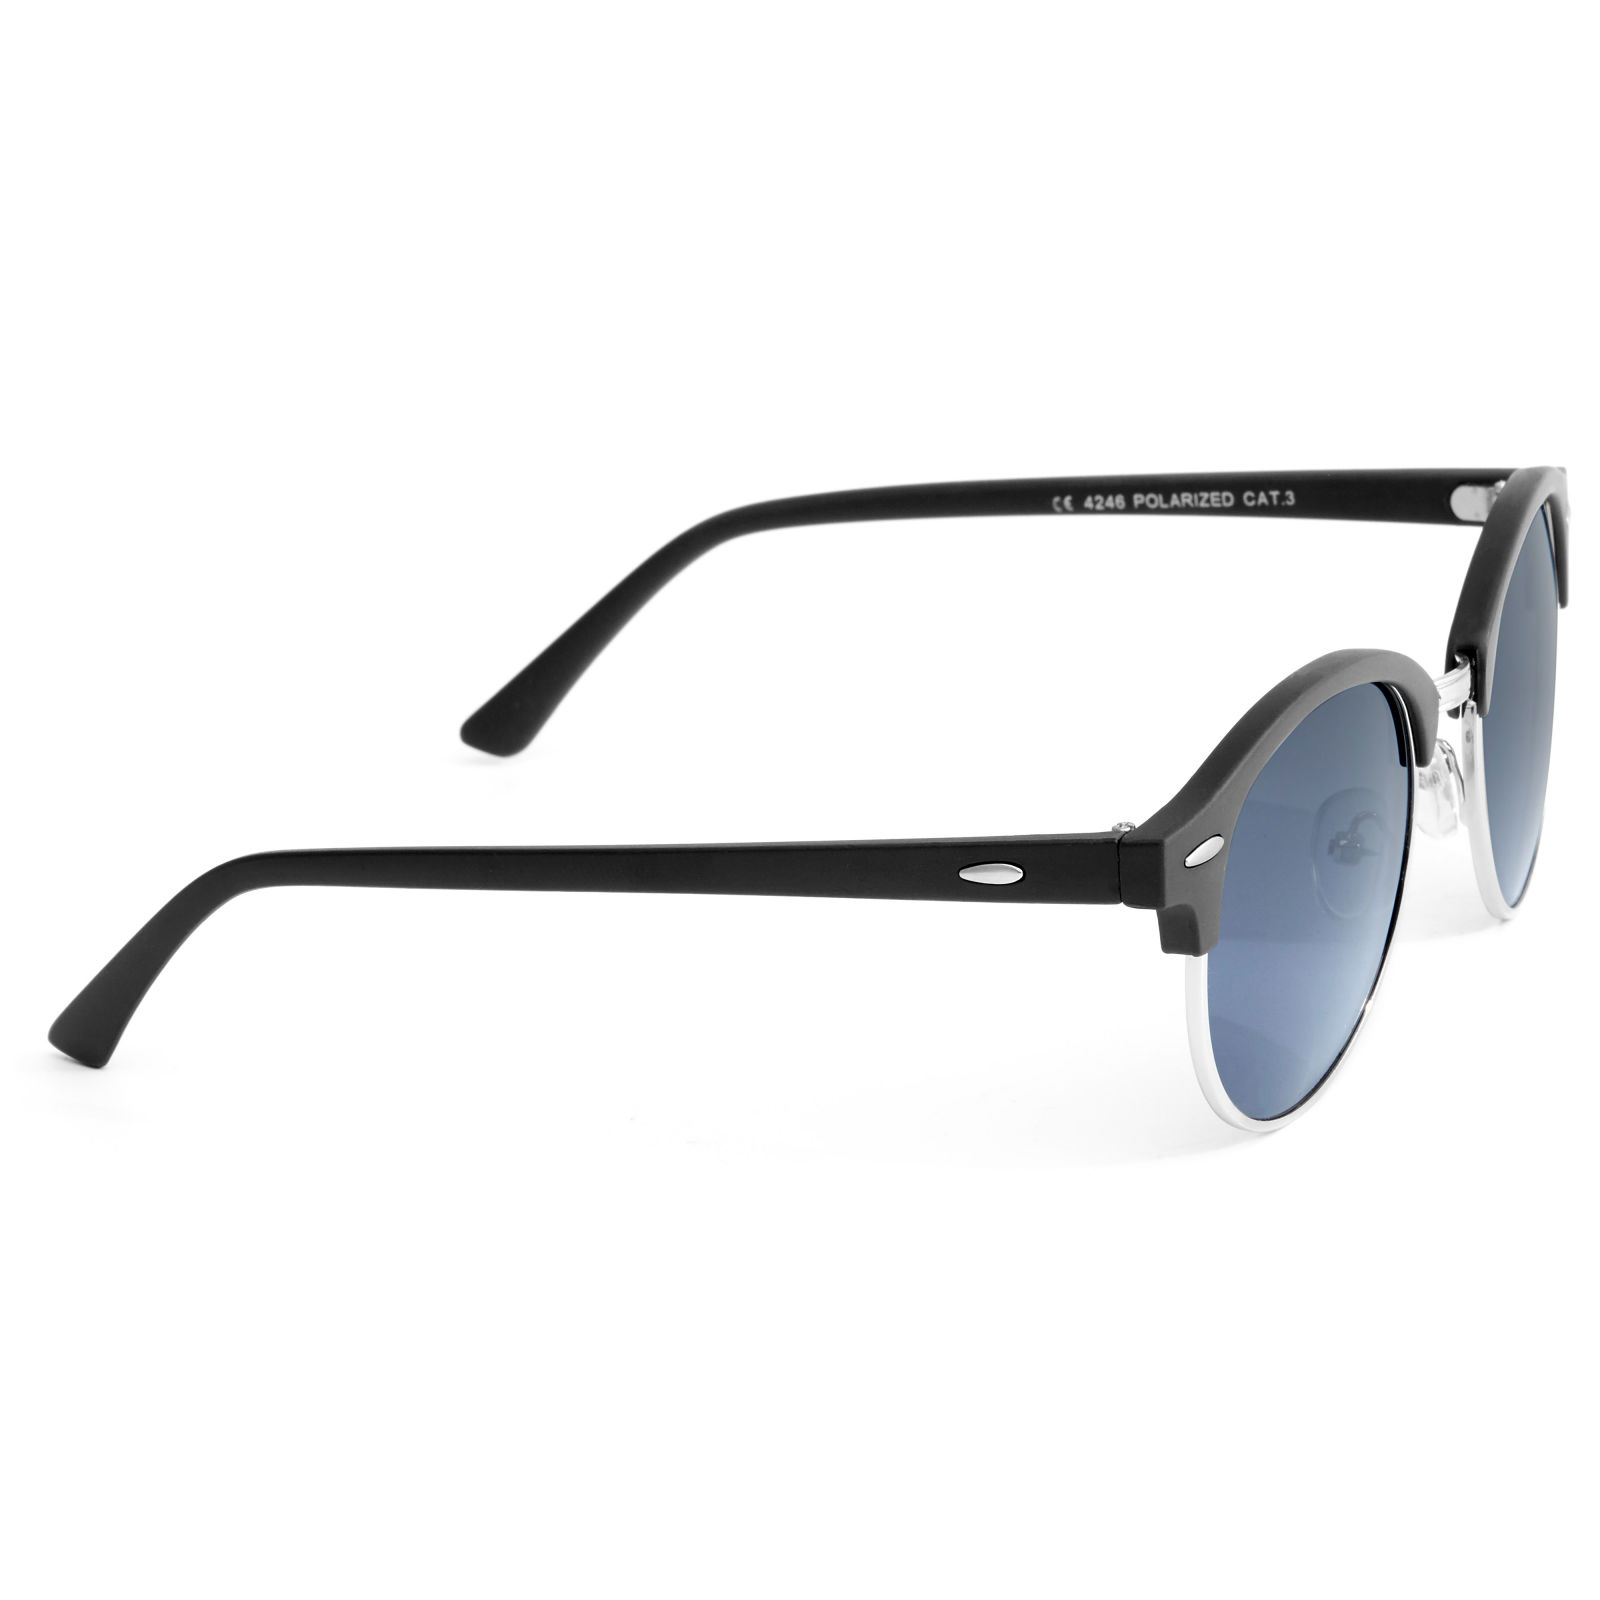 Polarized Γυαλιά Ηλίου Black Browline Smoke  5a8f5bcb5c2